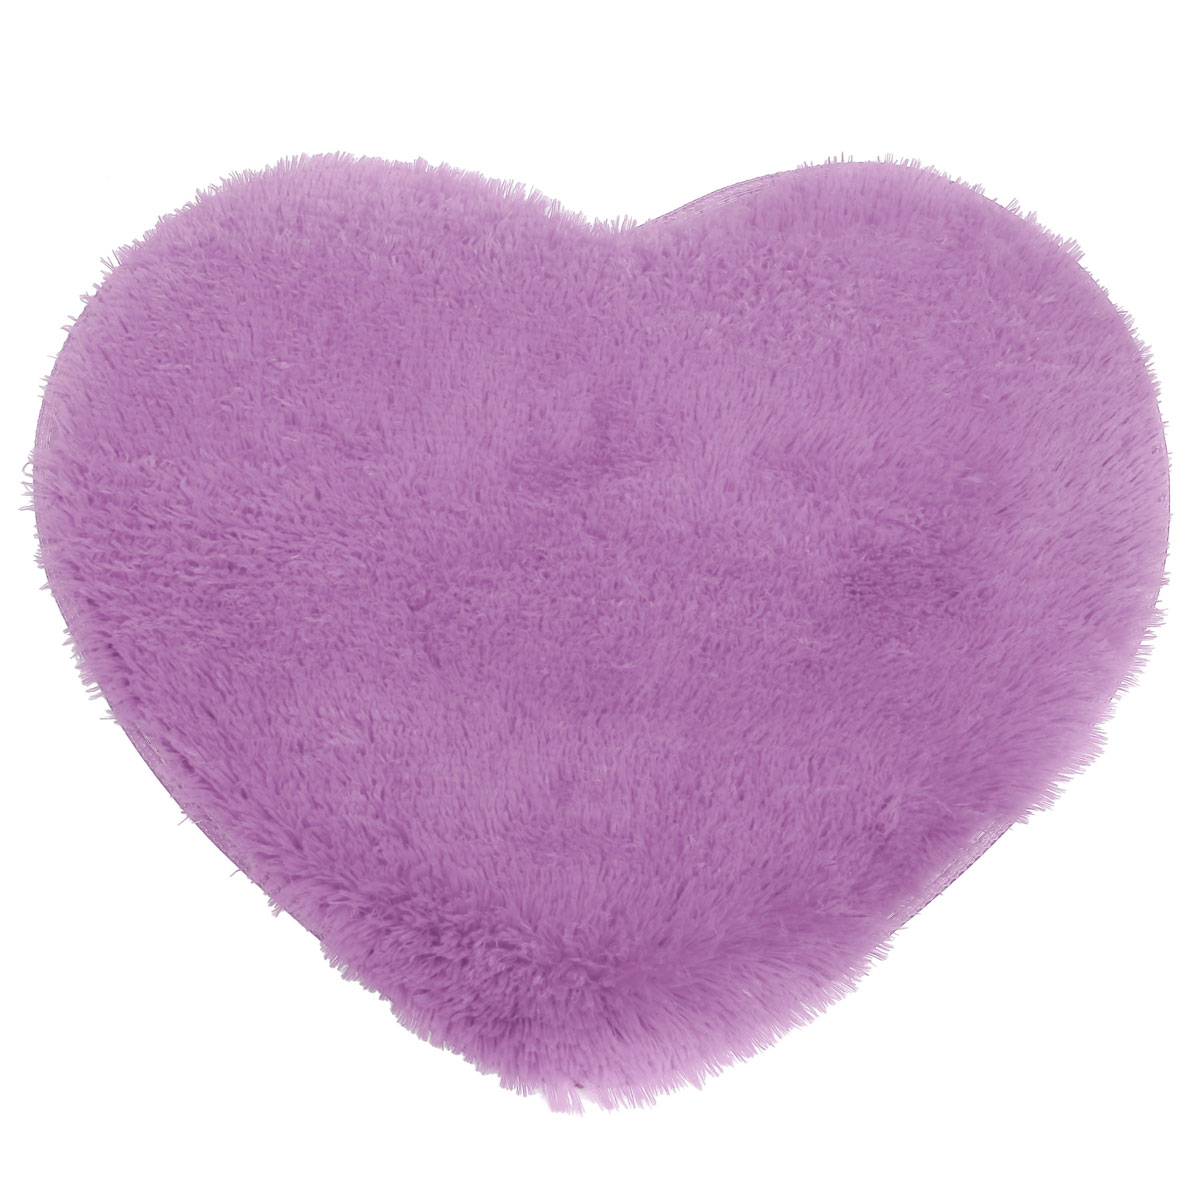 Heart Fluffy Mat Rugs Kids Soft Girls Boys Fake Faux Fur